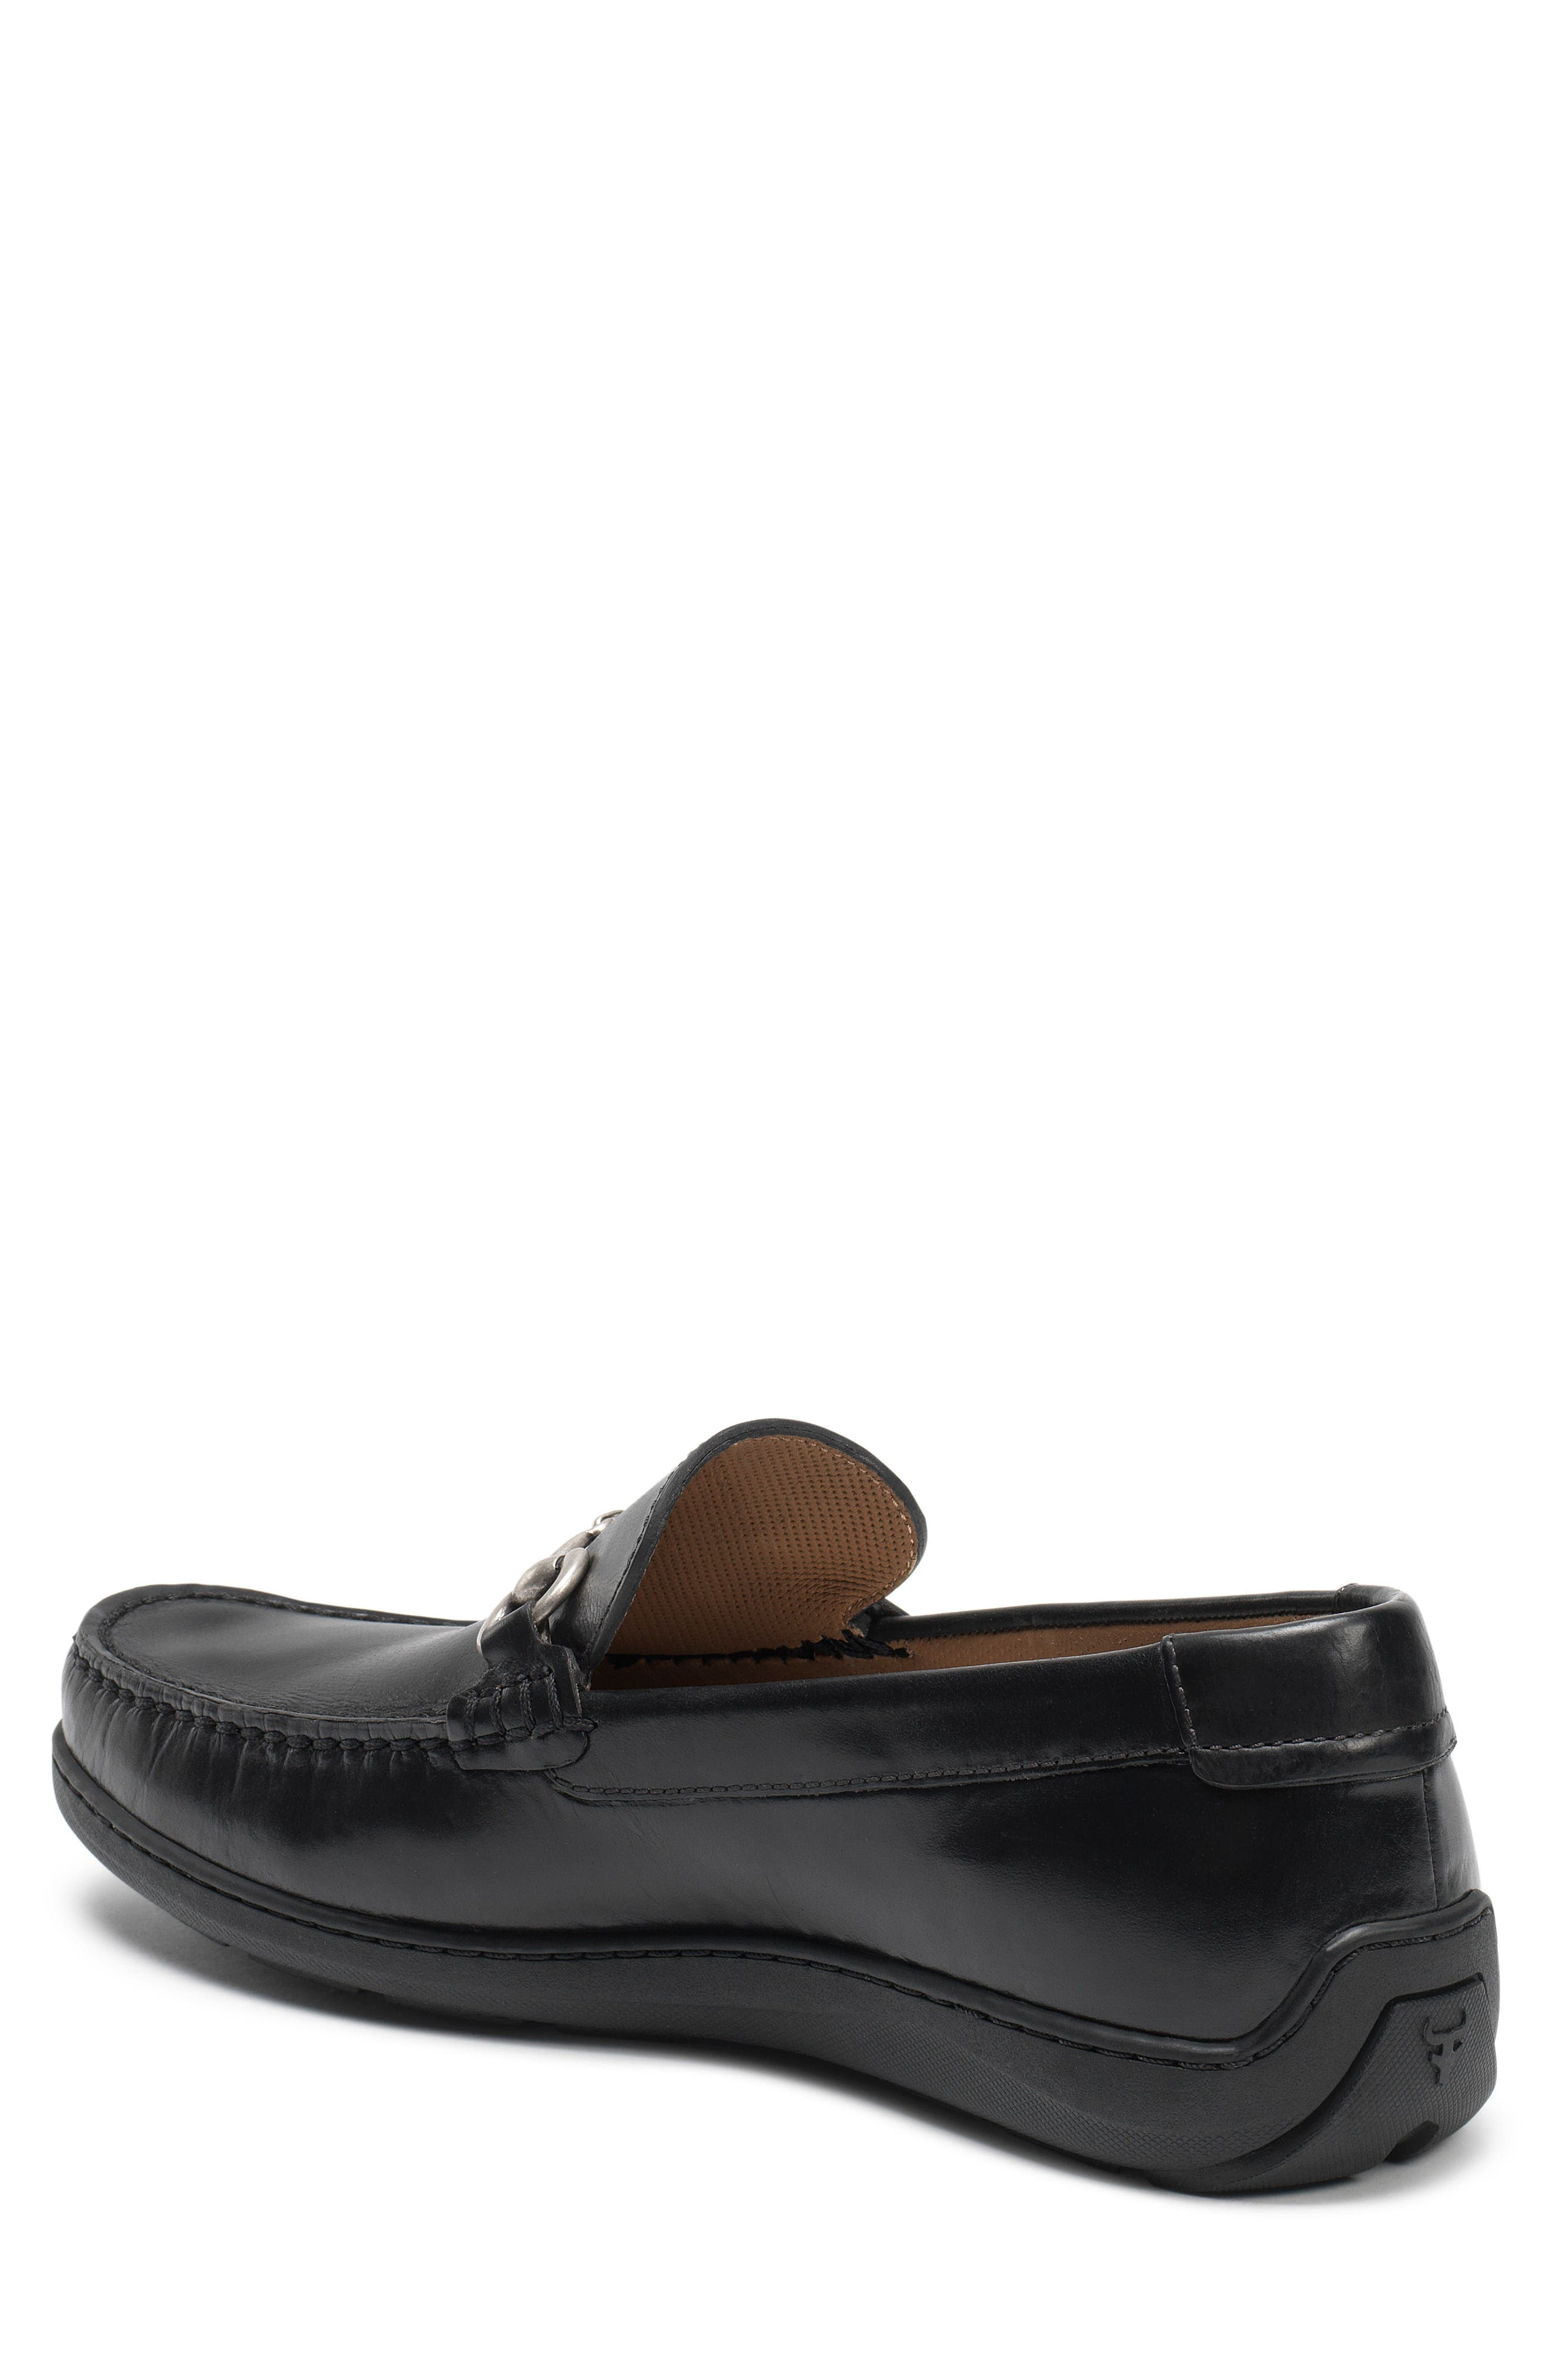 Stalworth Bit Loafer,                             Alternate thumbnail 2, color,                             001